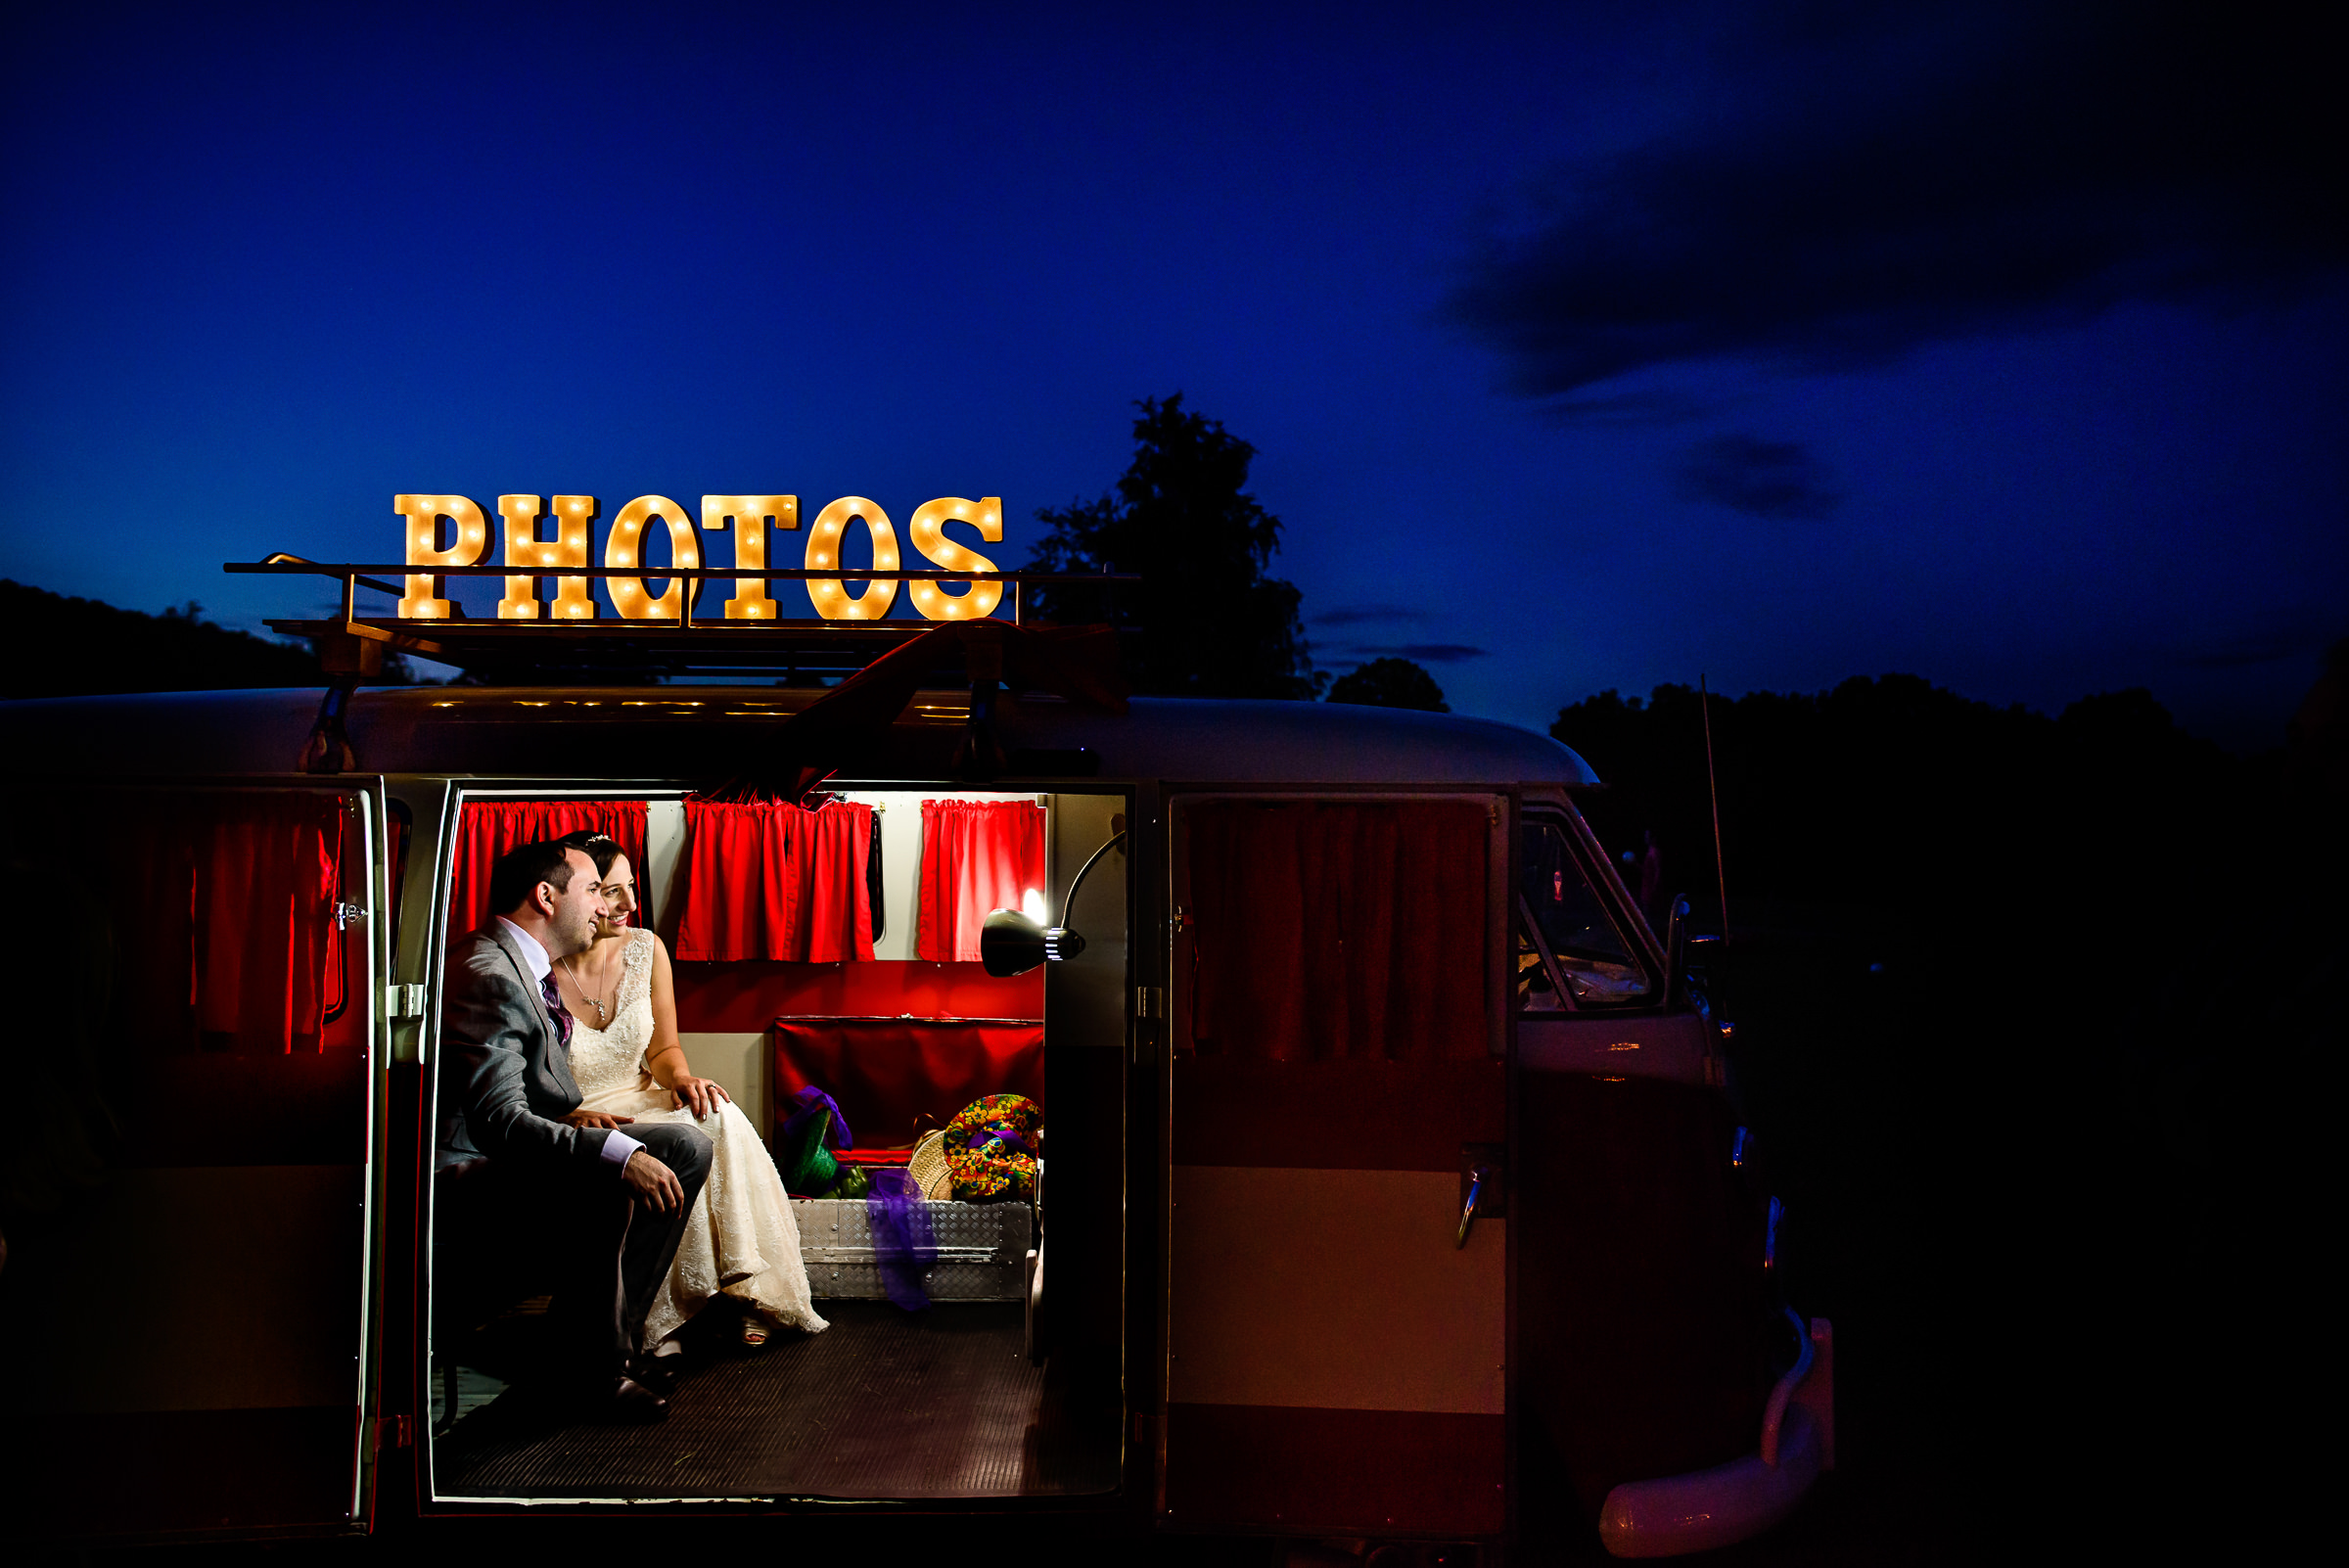 married-couple-in-vw-bus-photo-booth-hannah-photography.